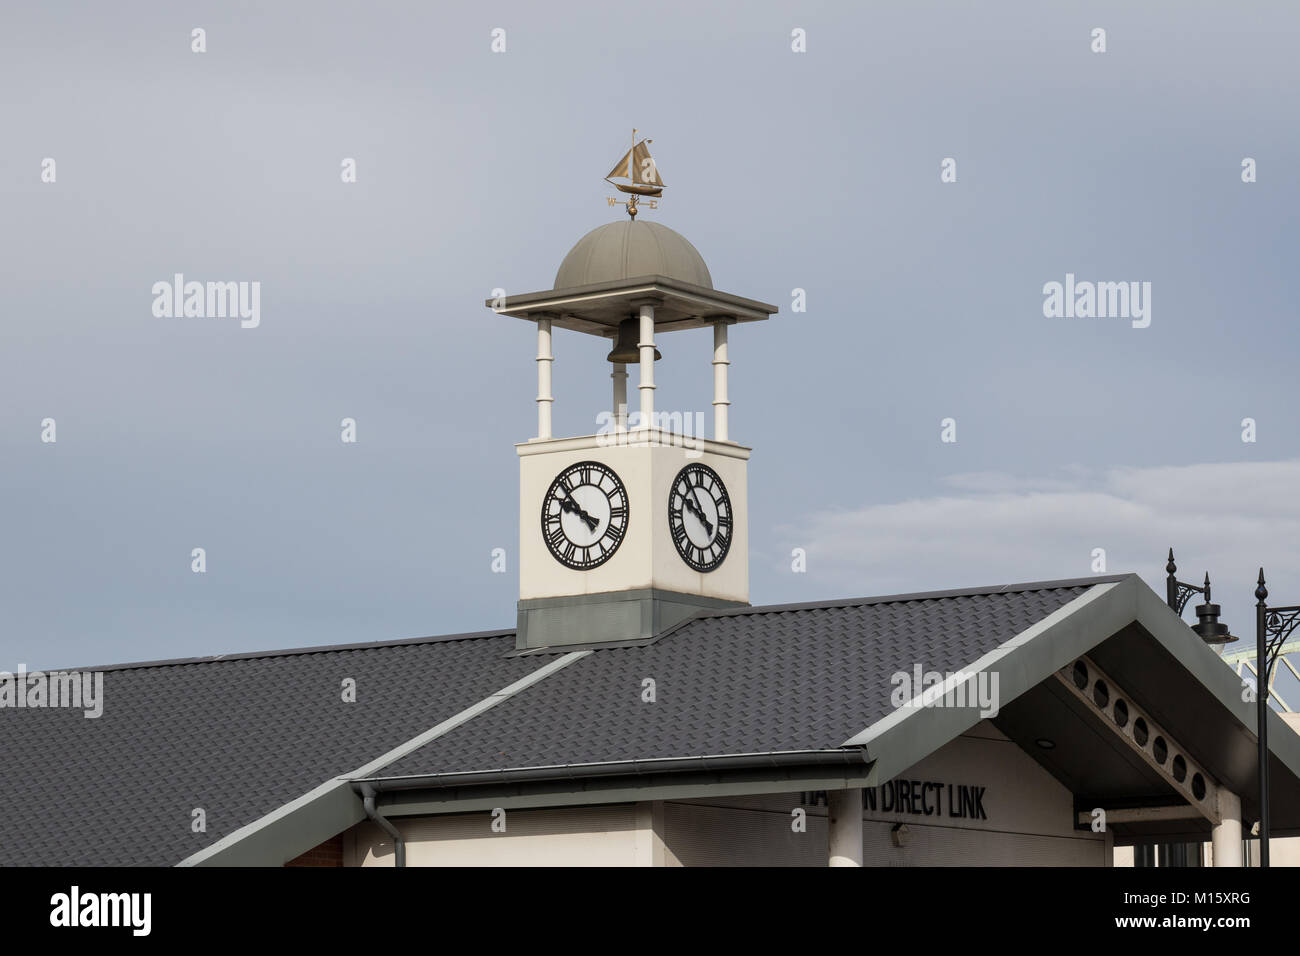 Small tower with bell, clock and weather vane with model ship on the rooftop - Halton Direct Link building, Runcorn, - Stock Image